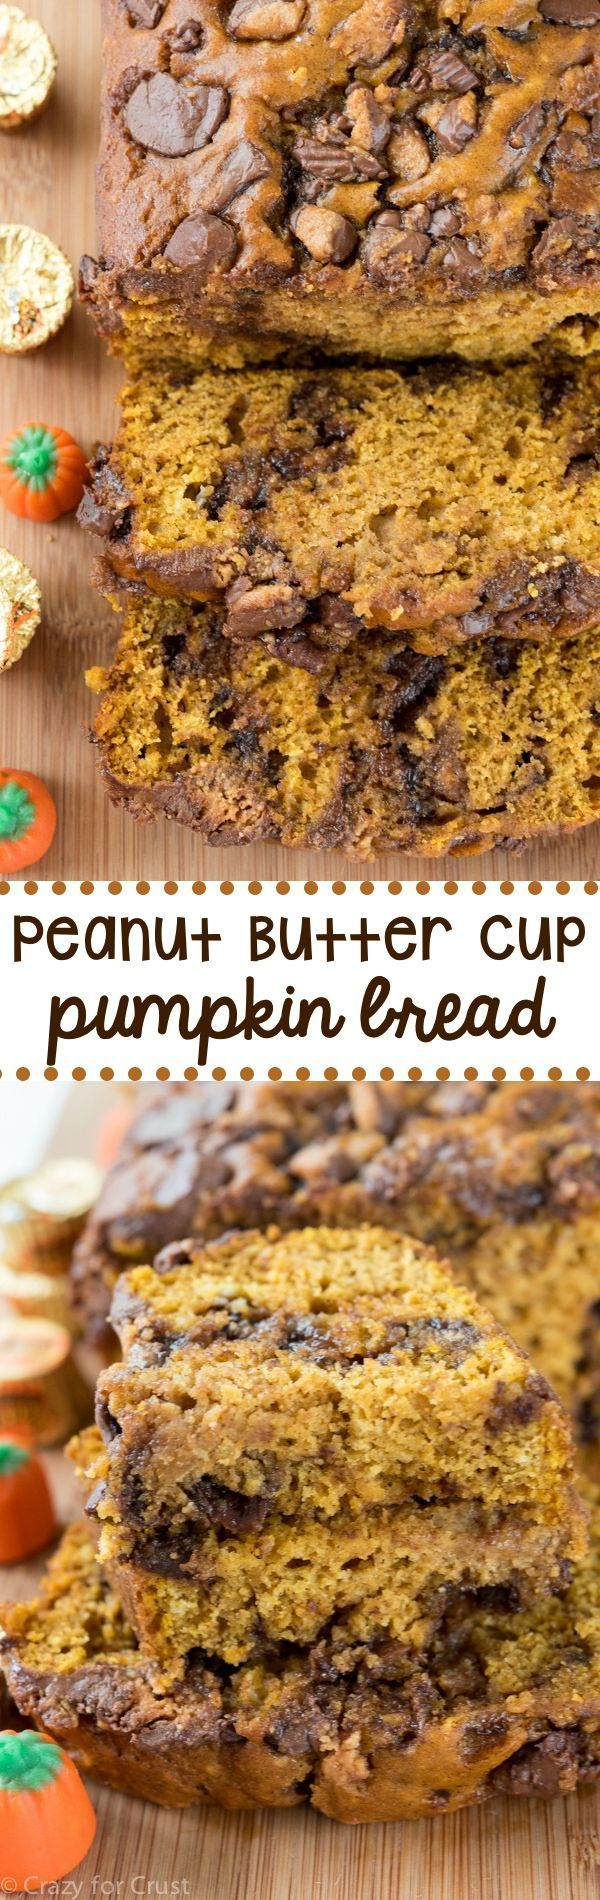 Peanut Butter Cup Pumpkin Bread - an easy pumpkin bread filled with peanut butter cups. We couldn't stop eating this bread!